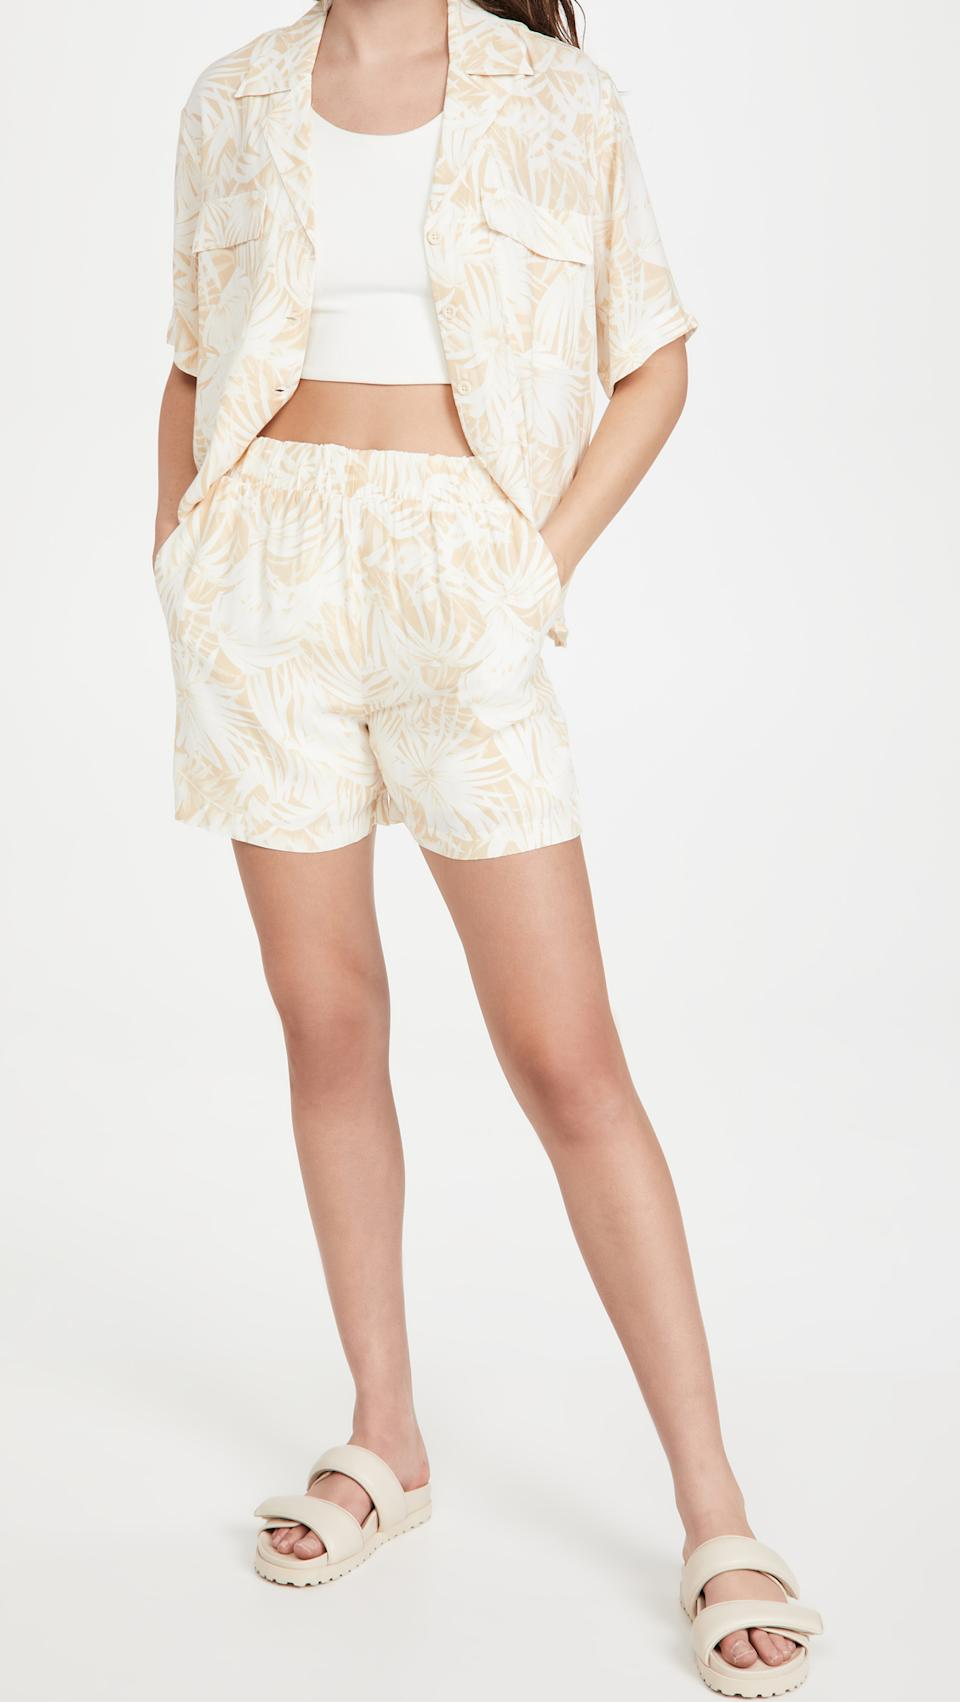 Anine Bing Austin Top and Candice Shorts. Image via Shopbop.